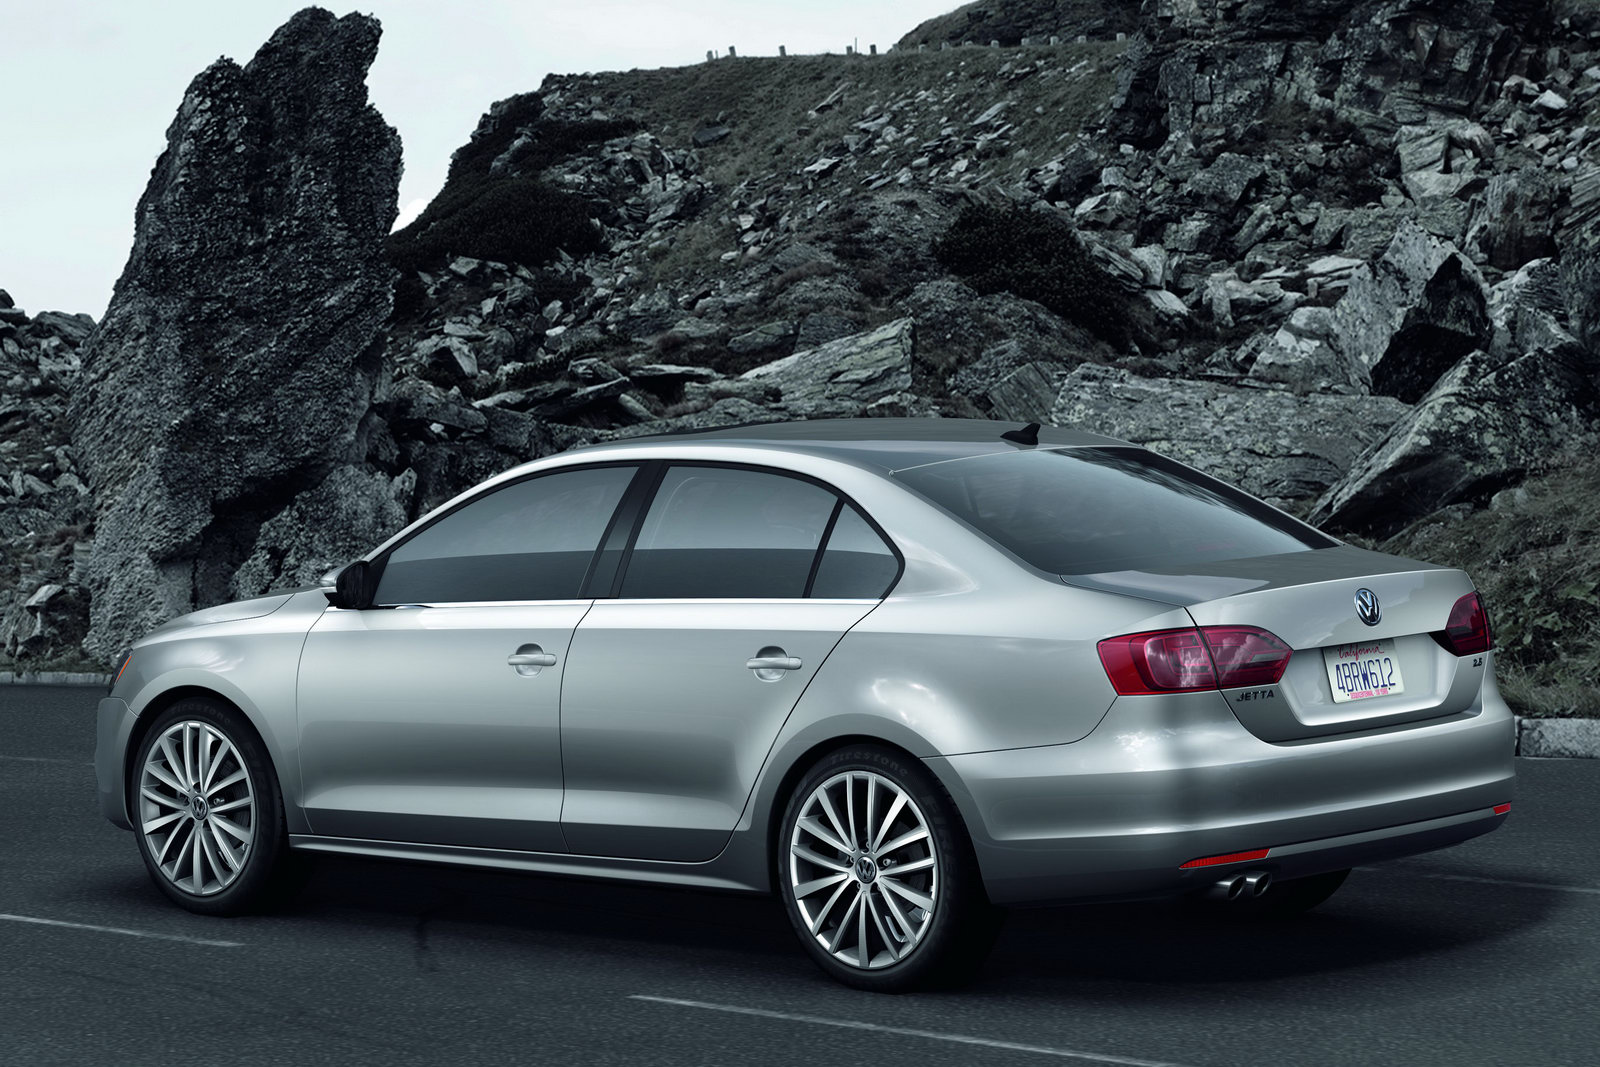 New Volkswagen Jetta To Launch On 17 August 2011 Car Dunia Car News Car Reviews Car